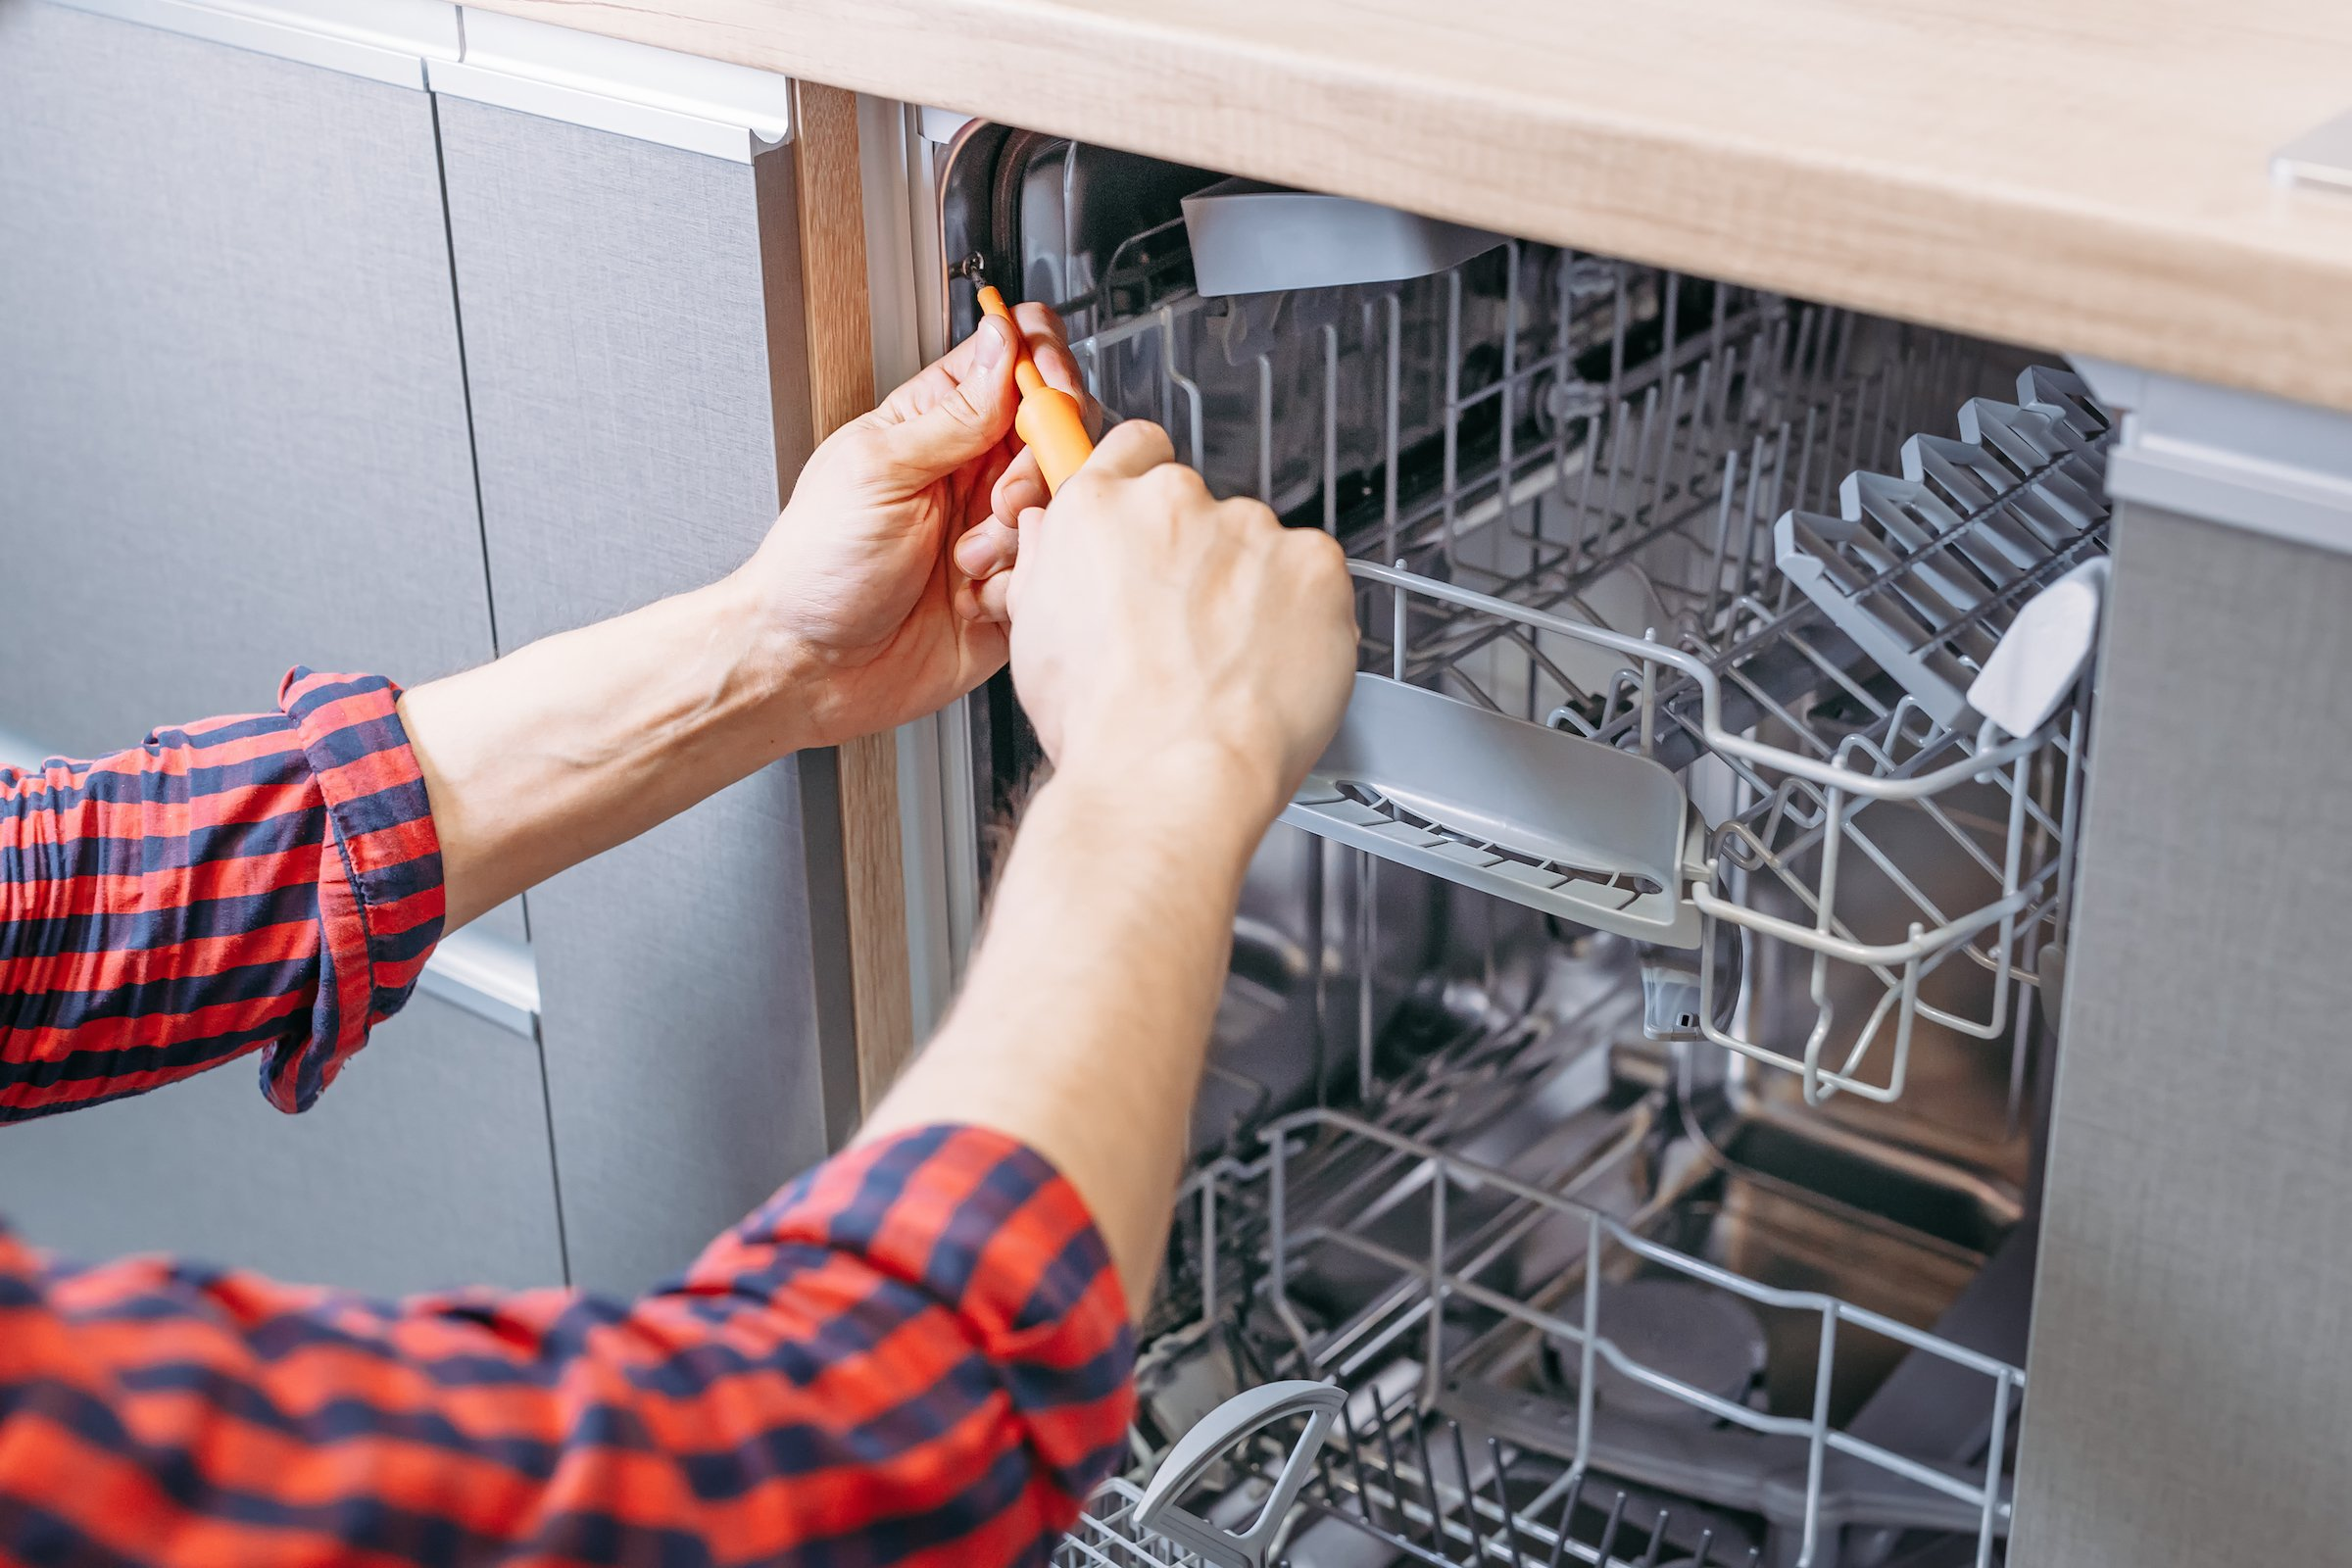 If your dishwasher won't stop running, it may be time to call in the professionals.